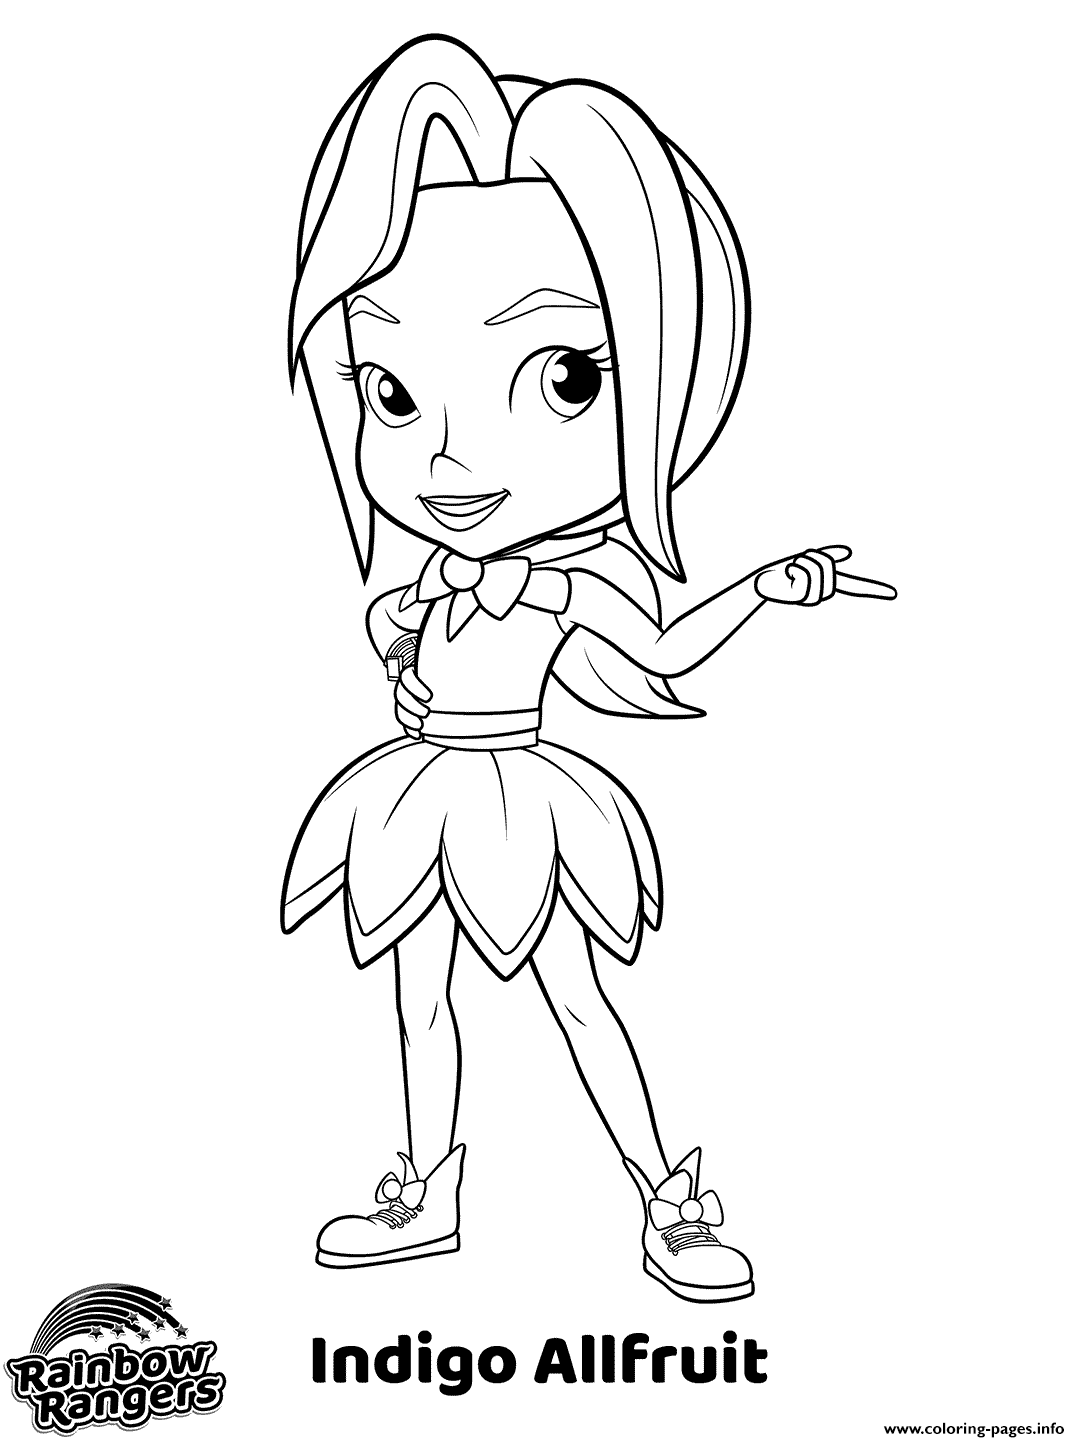 rainbow rangers coloring pages rainbow rangers coloring pages getcoloringpagescom rainbow rangers coloring pages